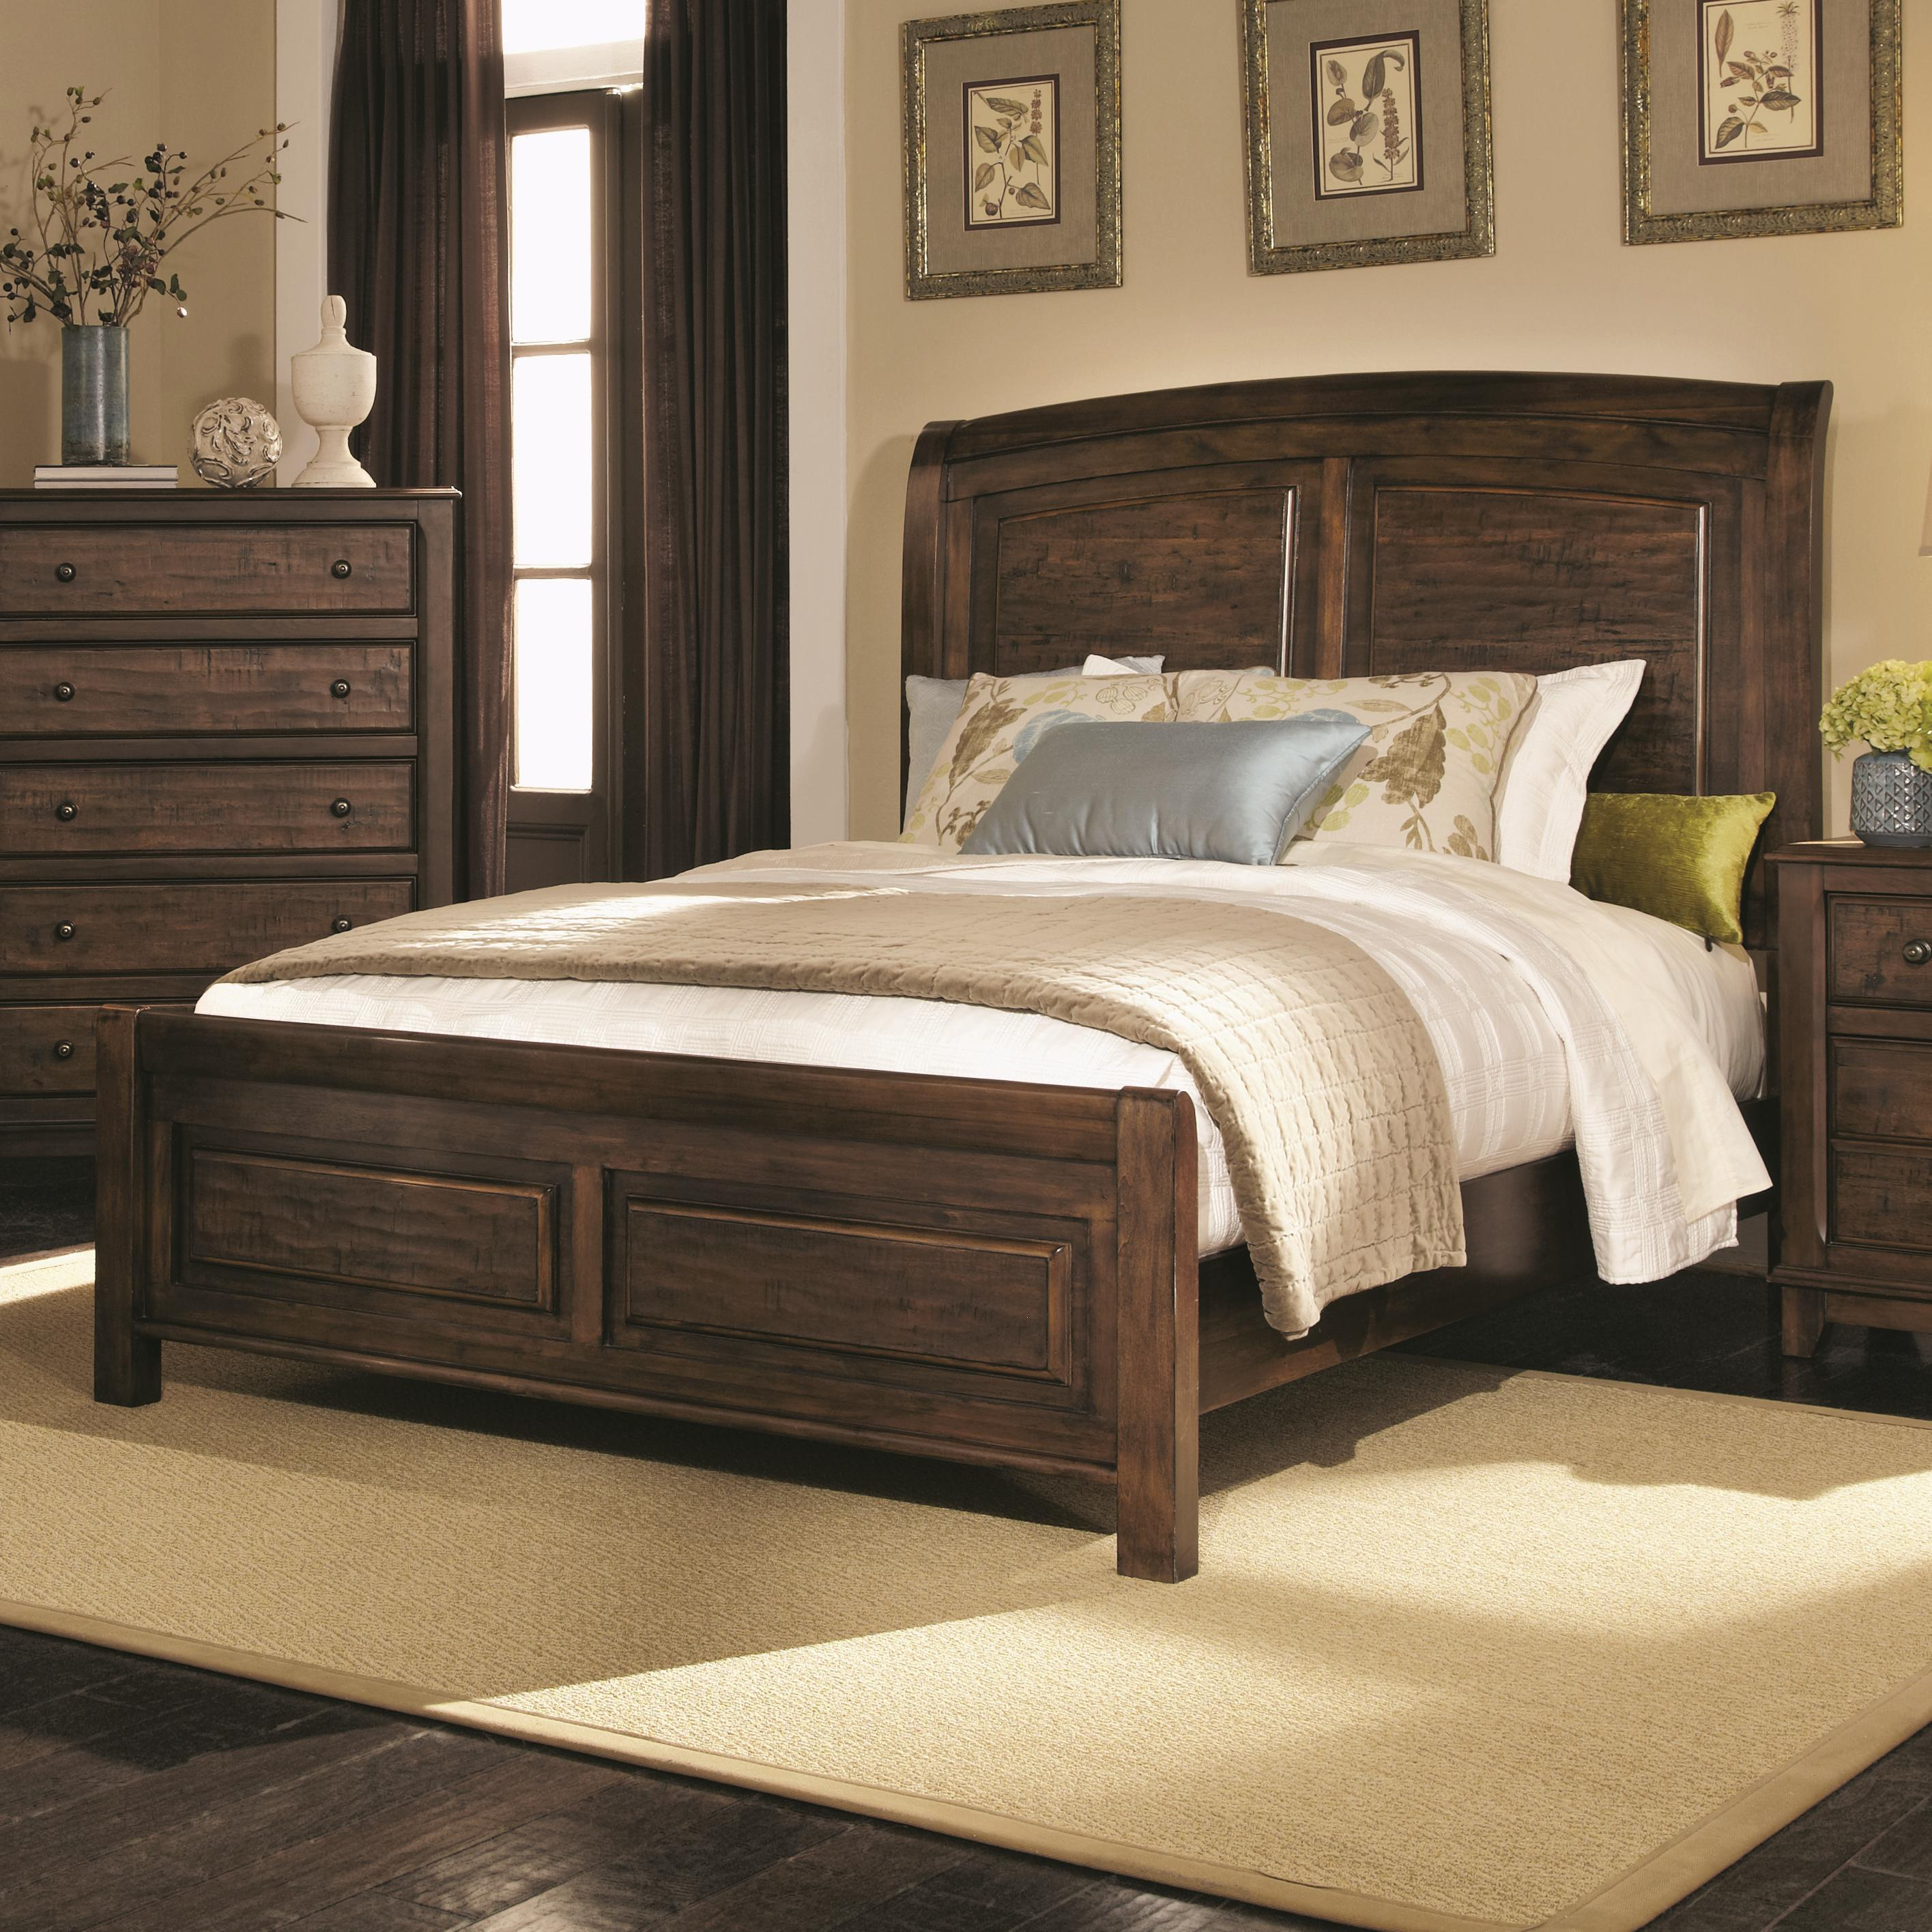 Round Beds | Where to Buy Round Beds | Round Bed with Canopy